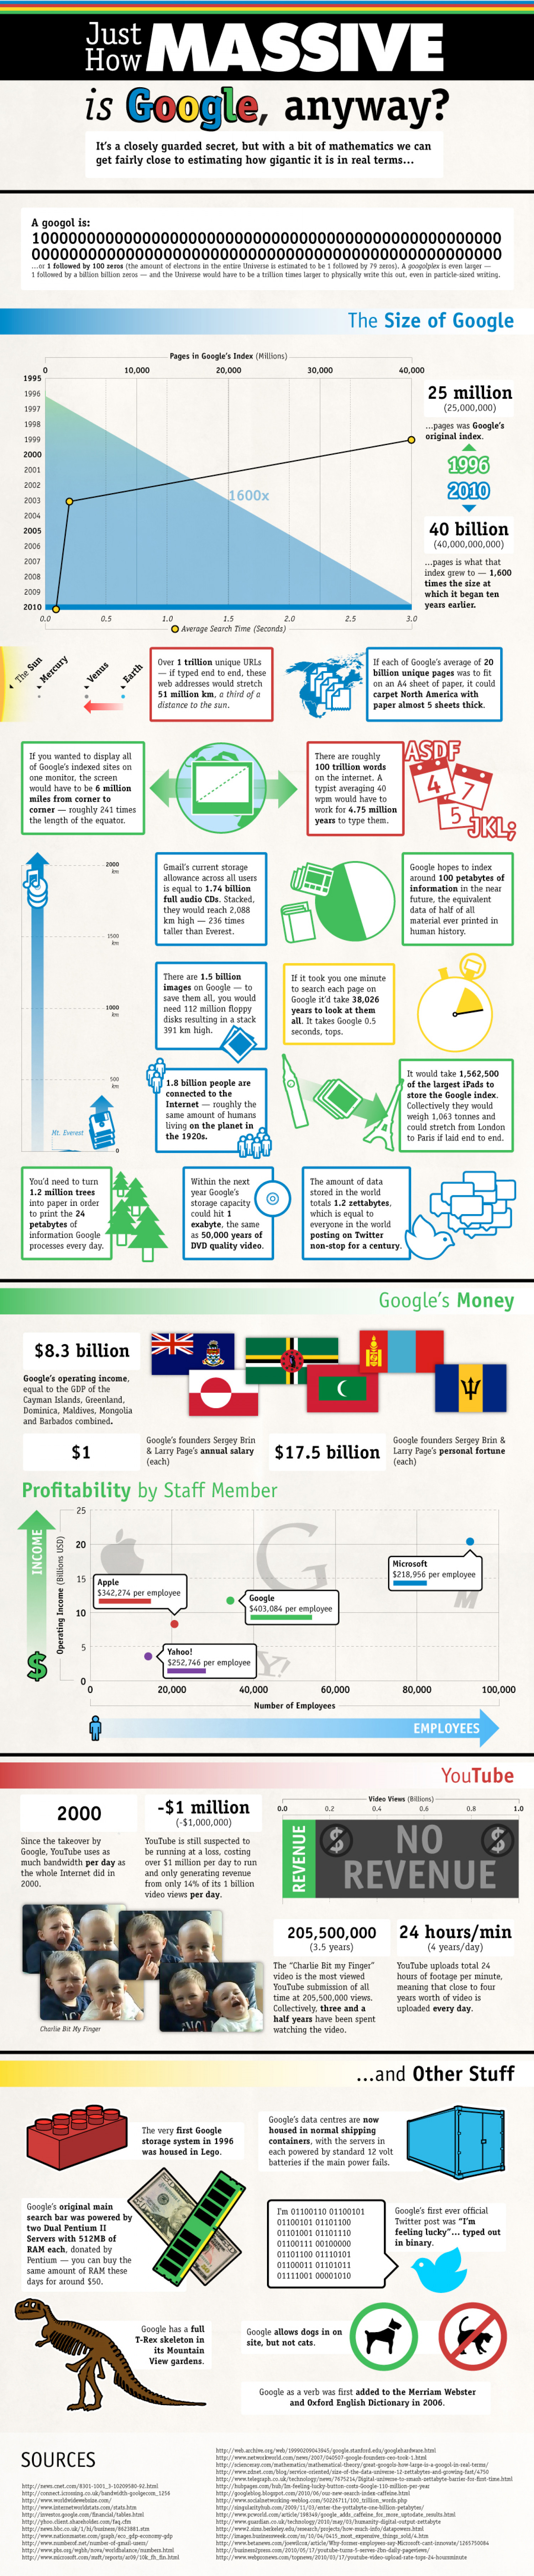 Just How Massive Is Google, Anyway? Infographic